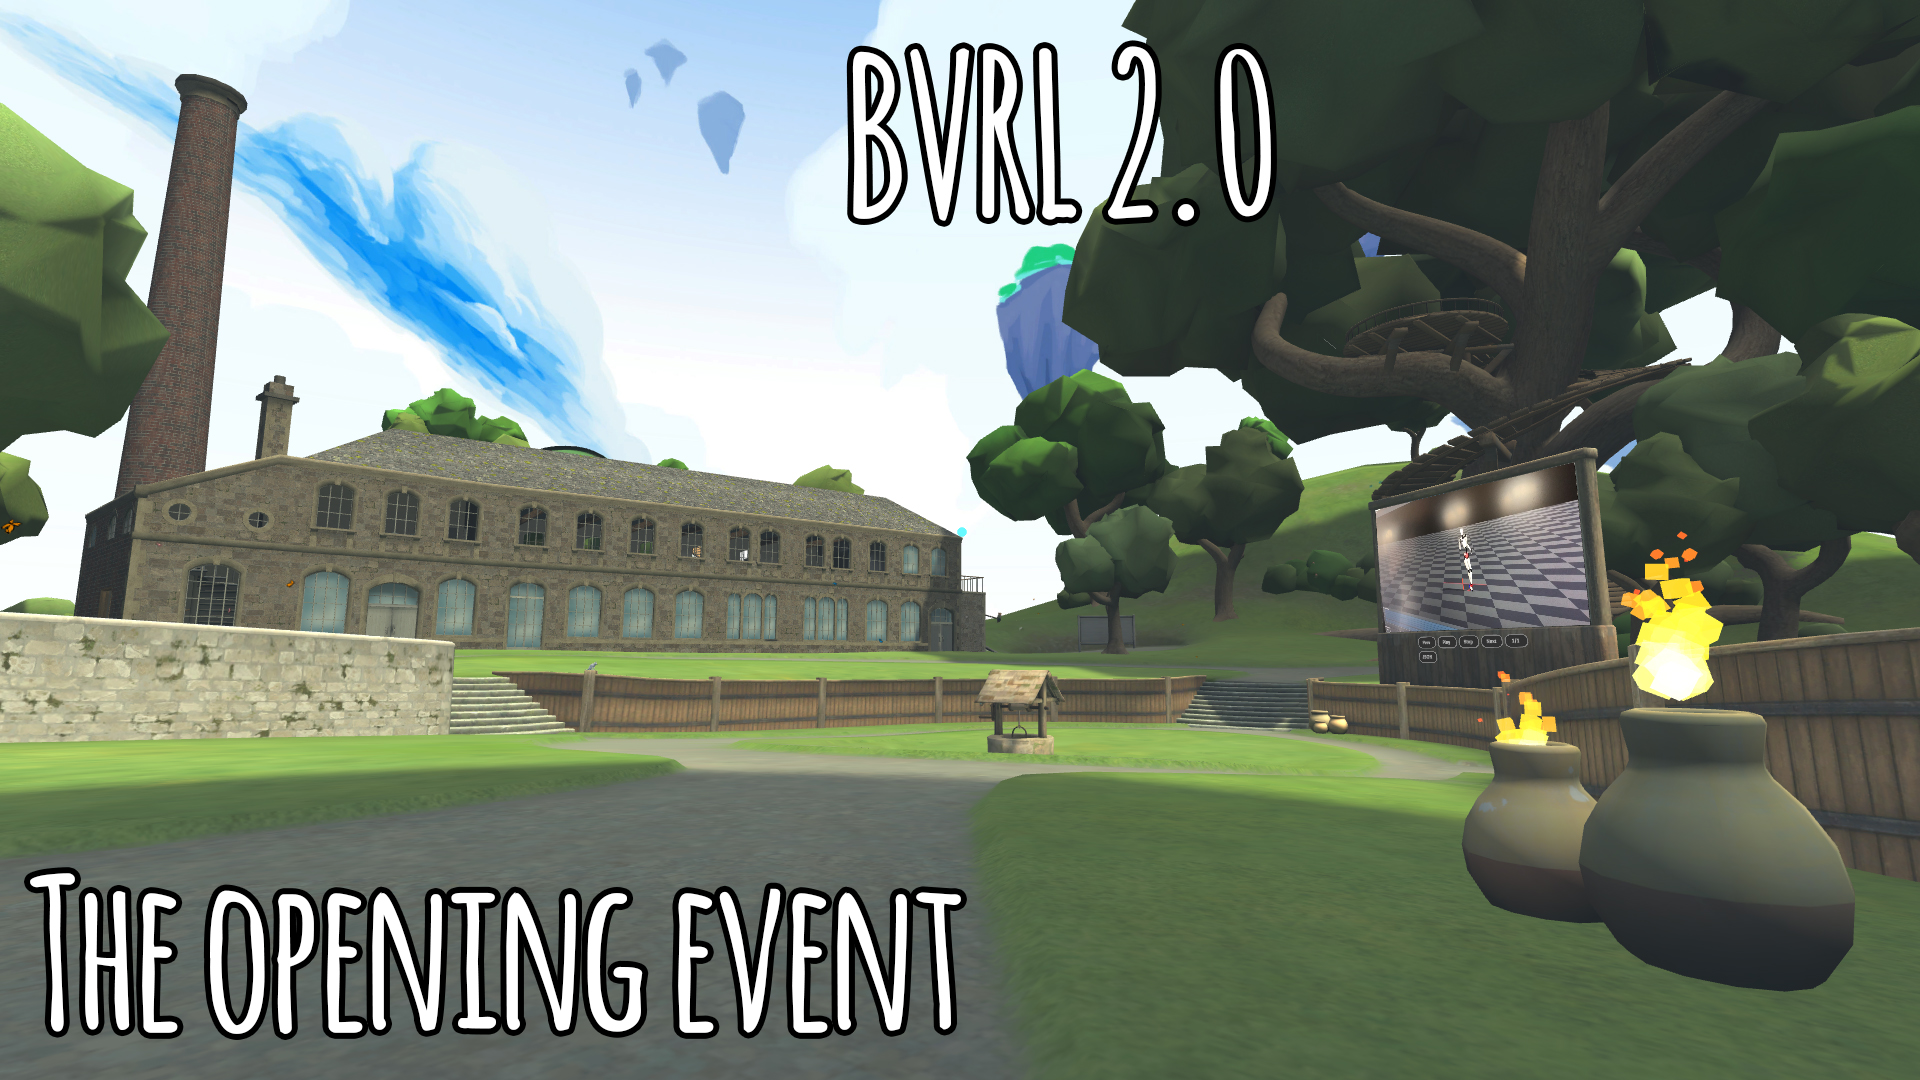 BVRL 2.0 – The Opening Event